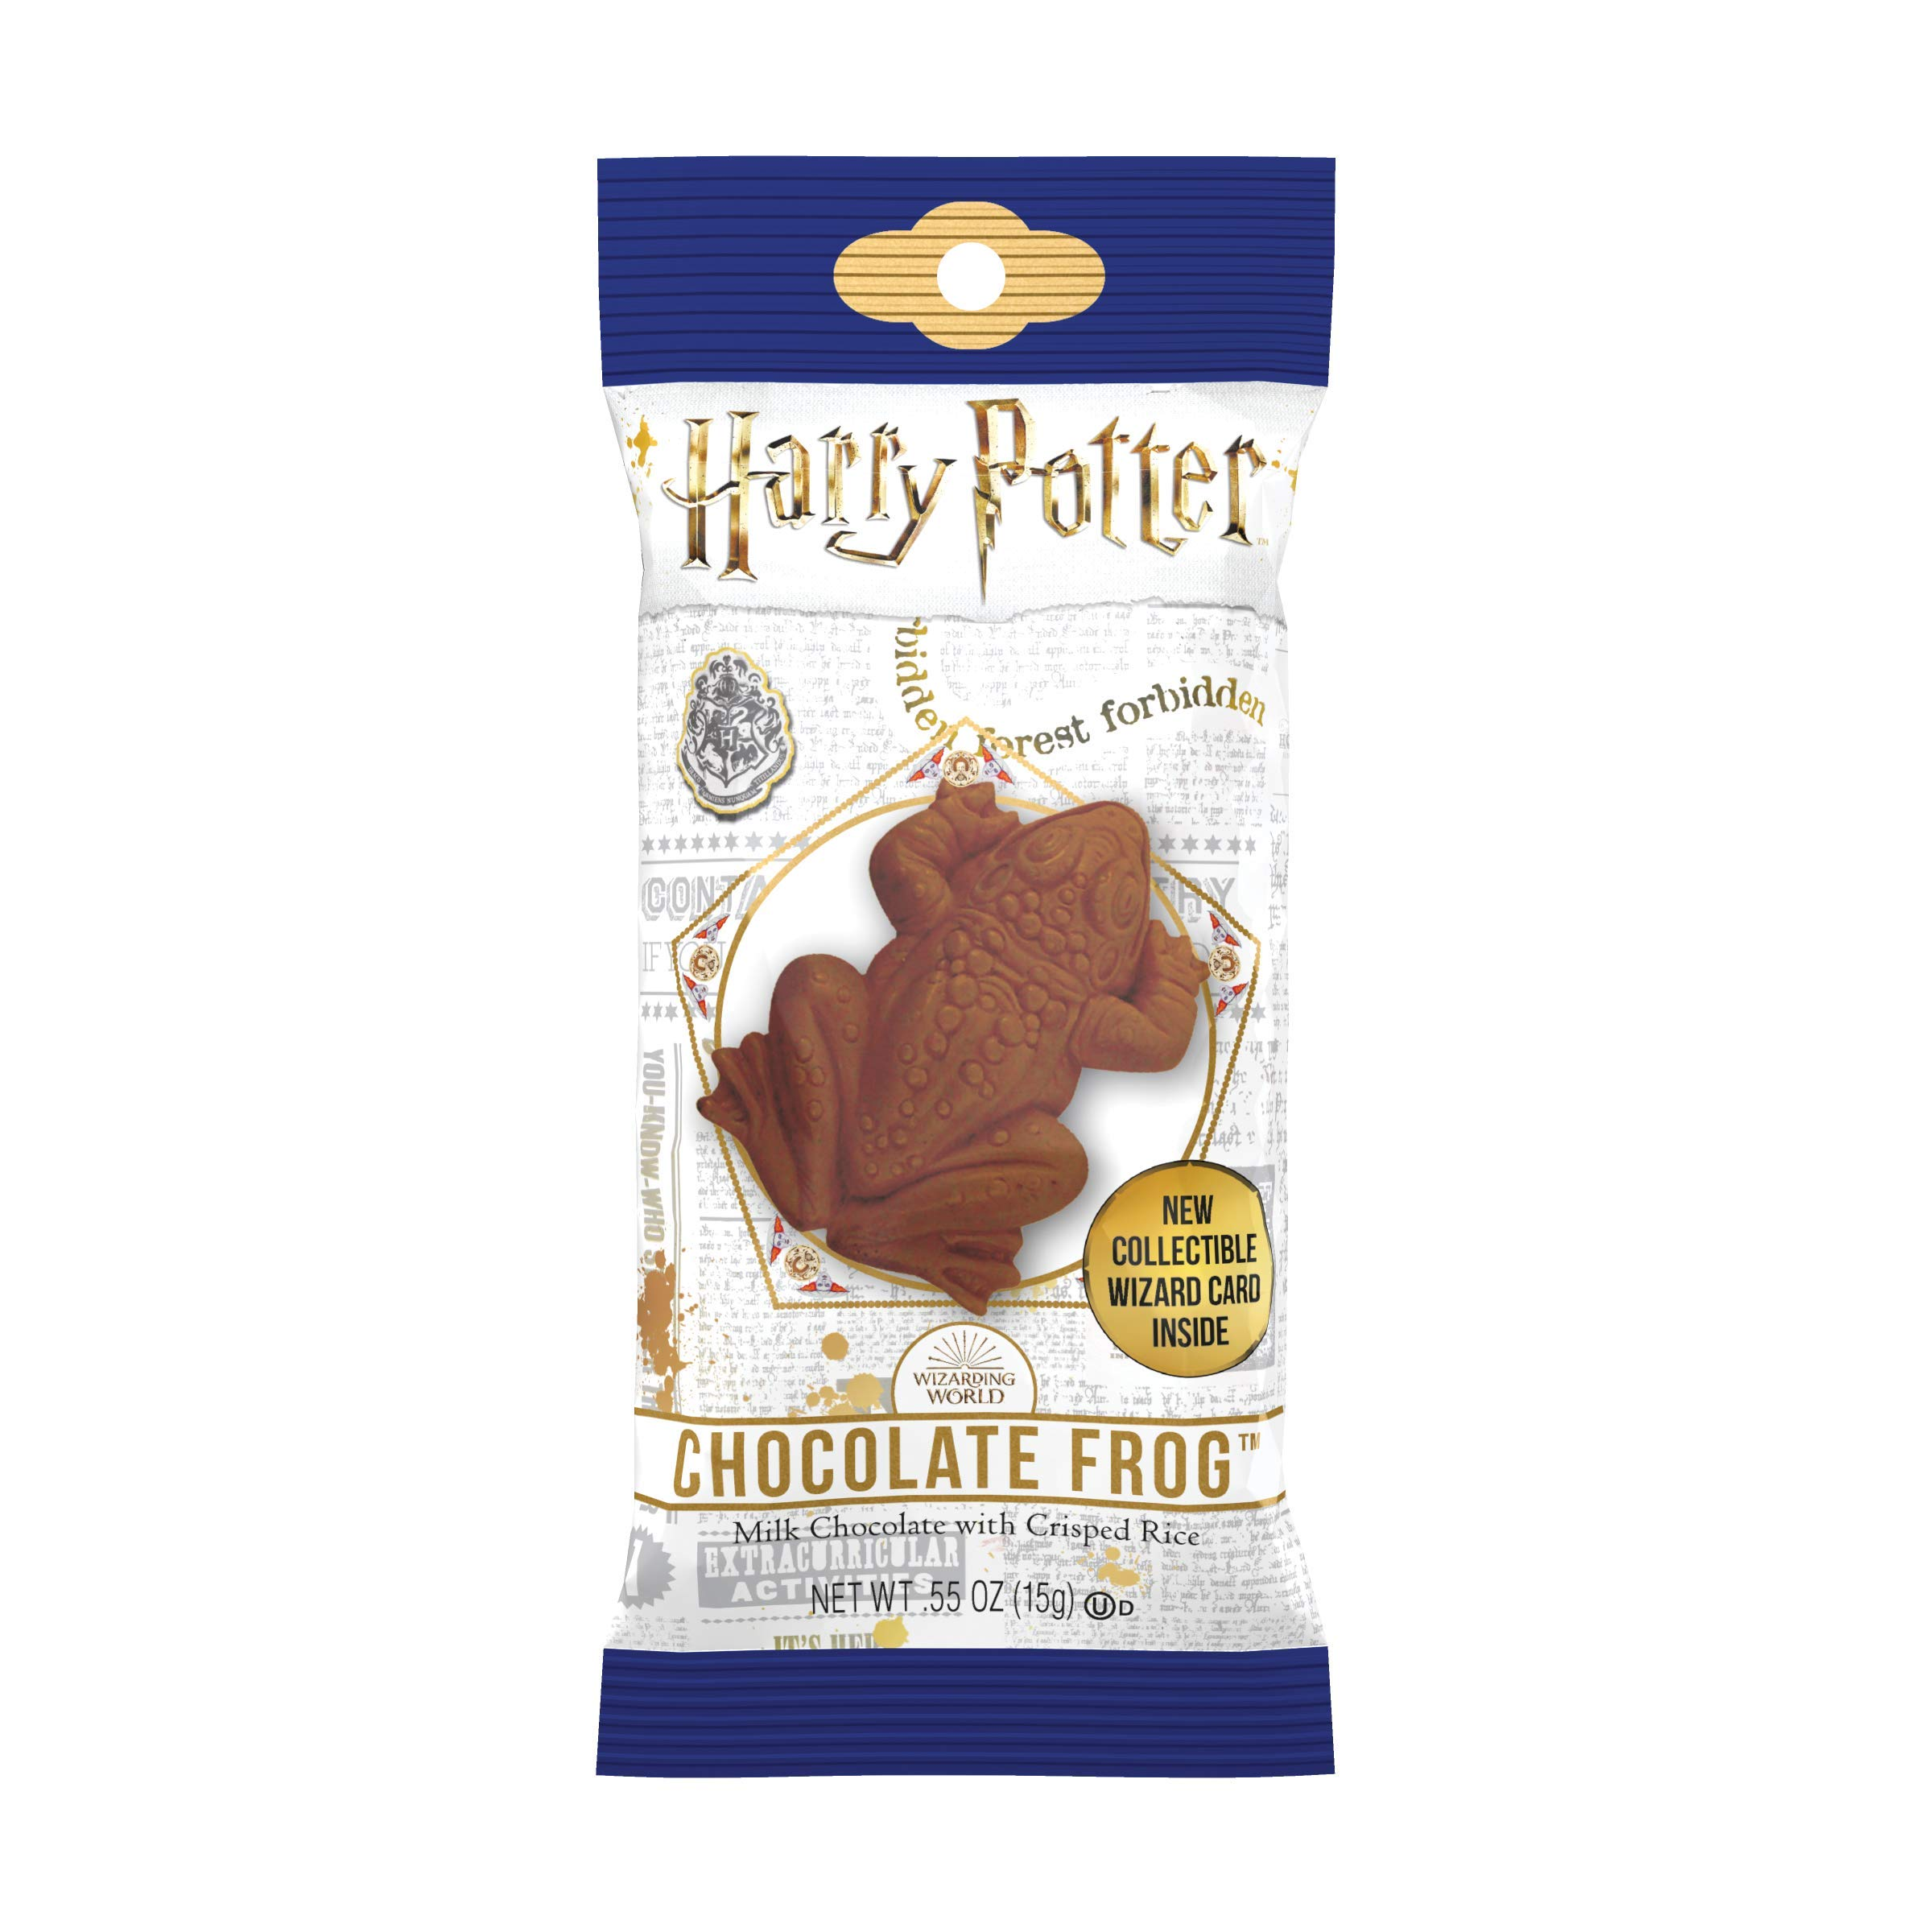 Jelly Belly Harry Potter Chocolate Frog, 0.55-oz, 24 Pack by Jelly Belly